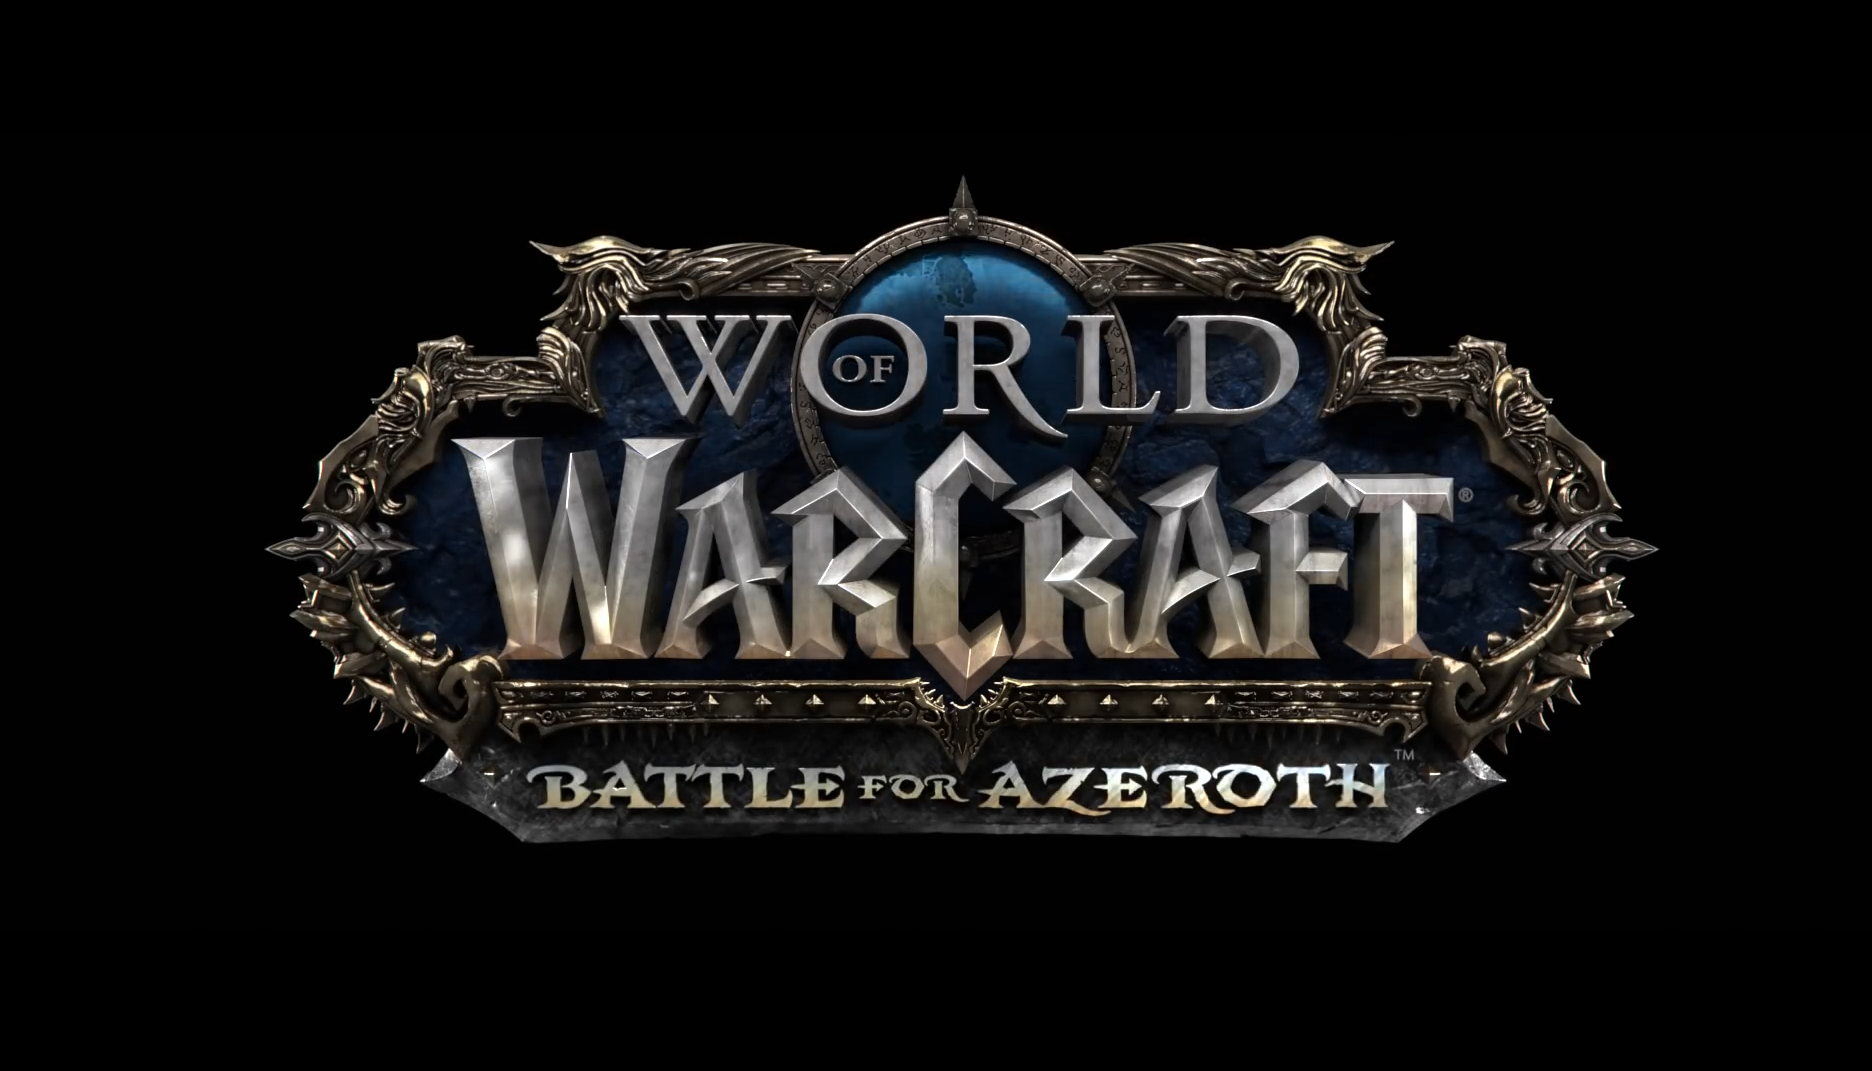 Battle for Azeroth Cinematic Trailer - GhostGamers2000